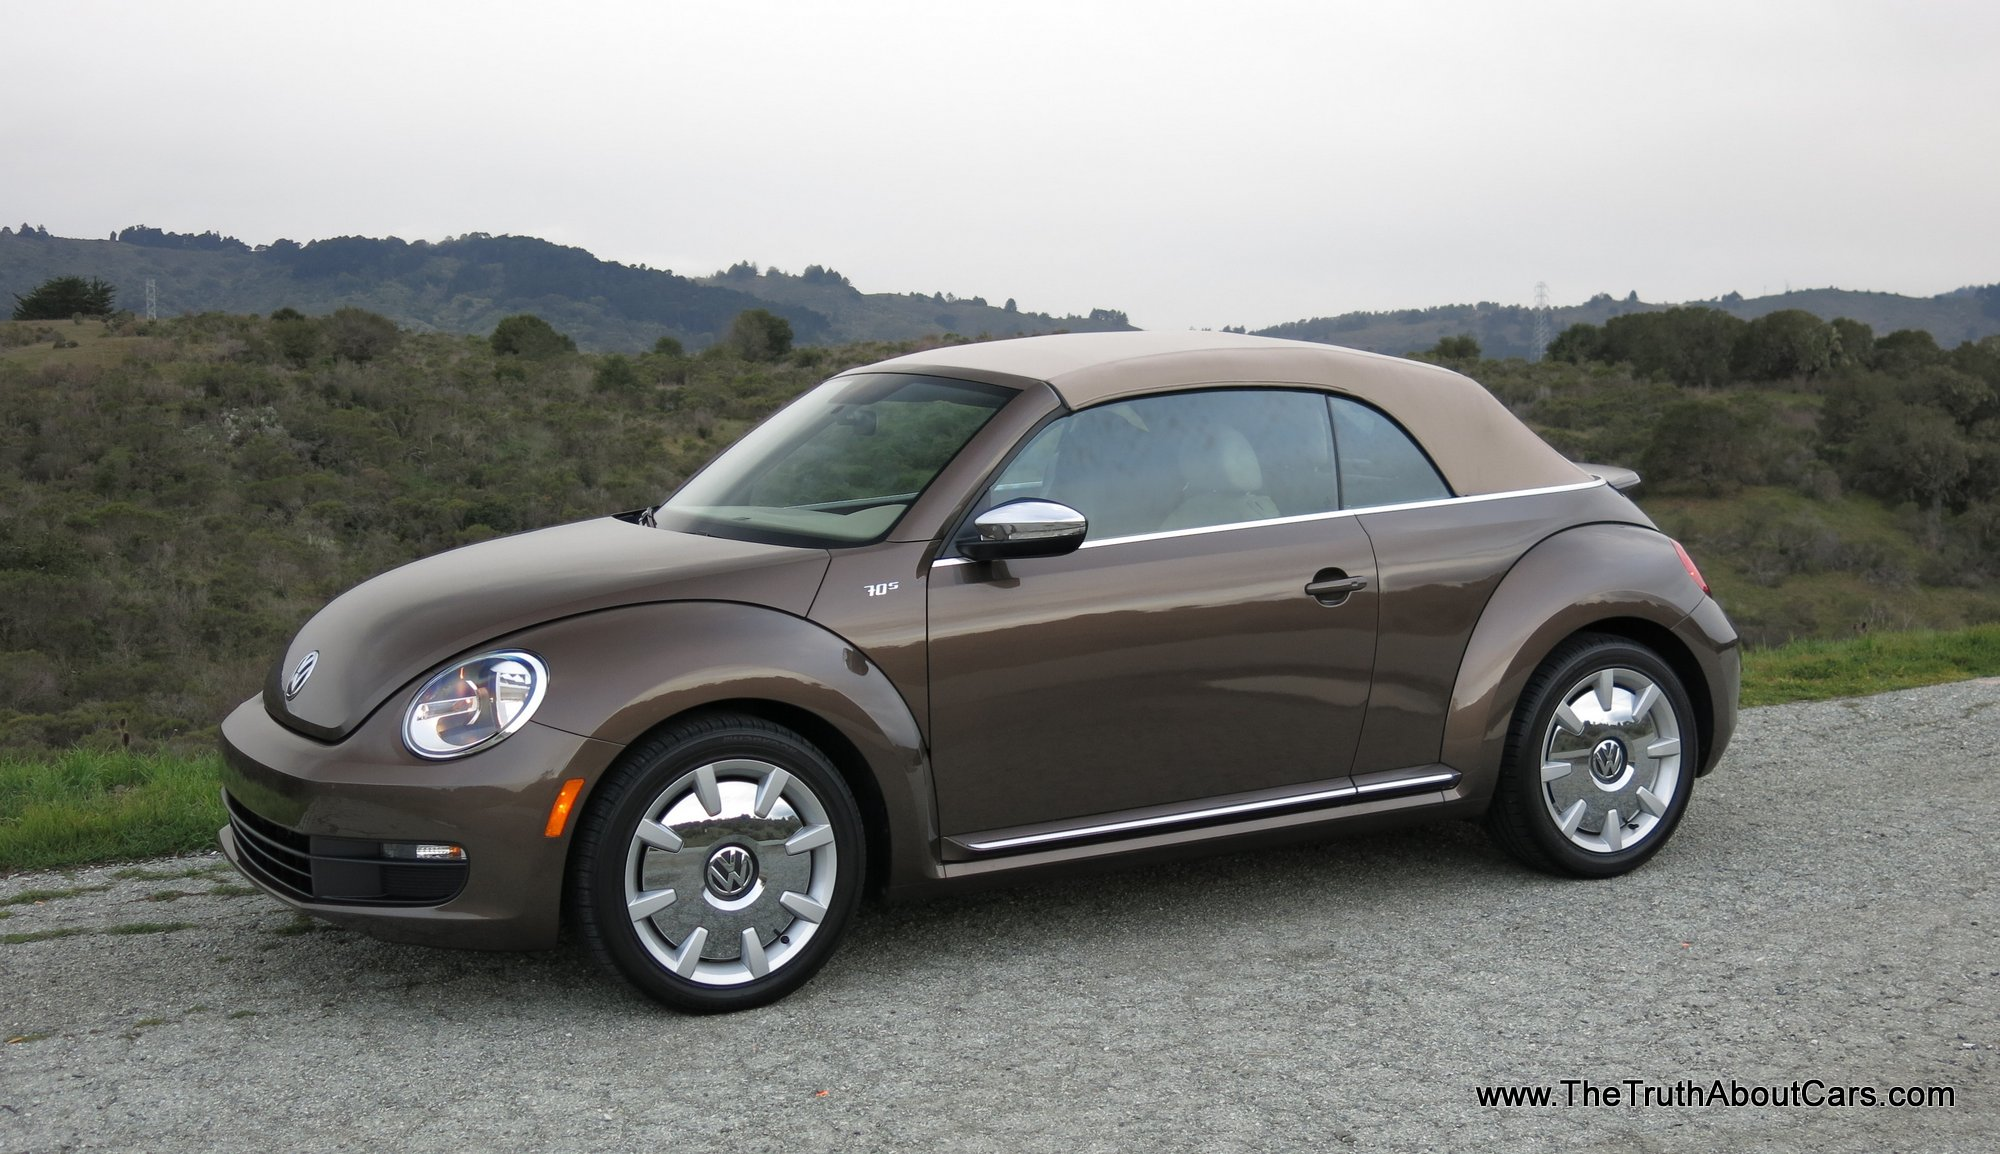 2013 Volkswagen Beetle Convertible photo - 3